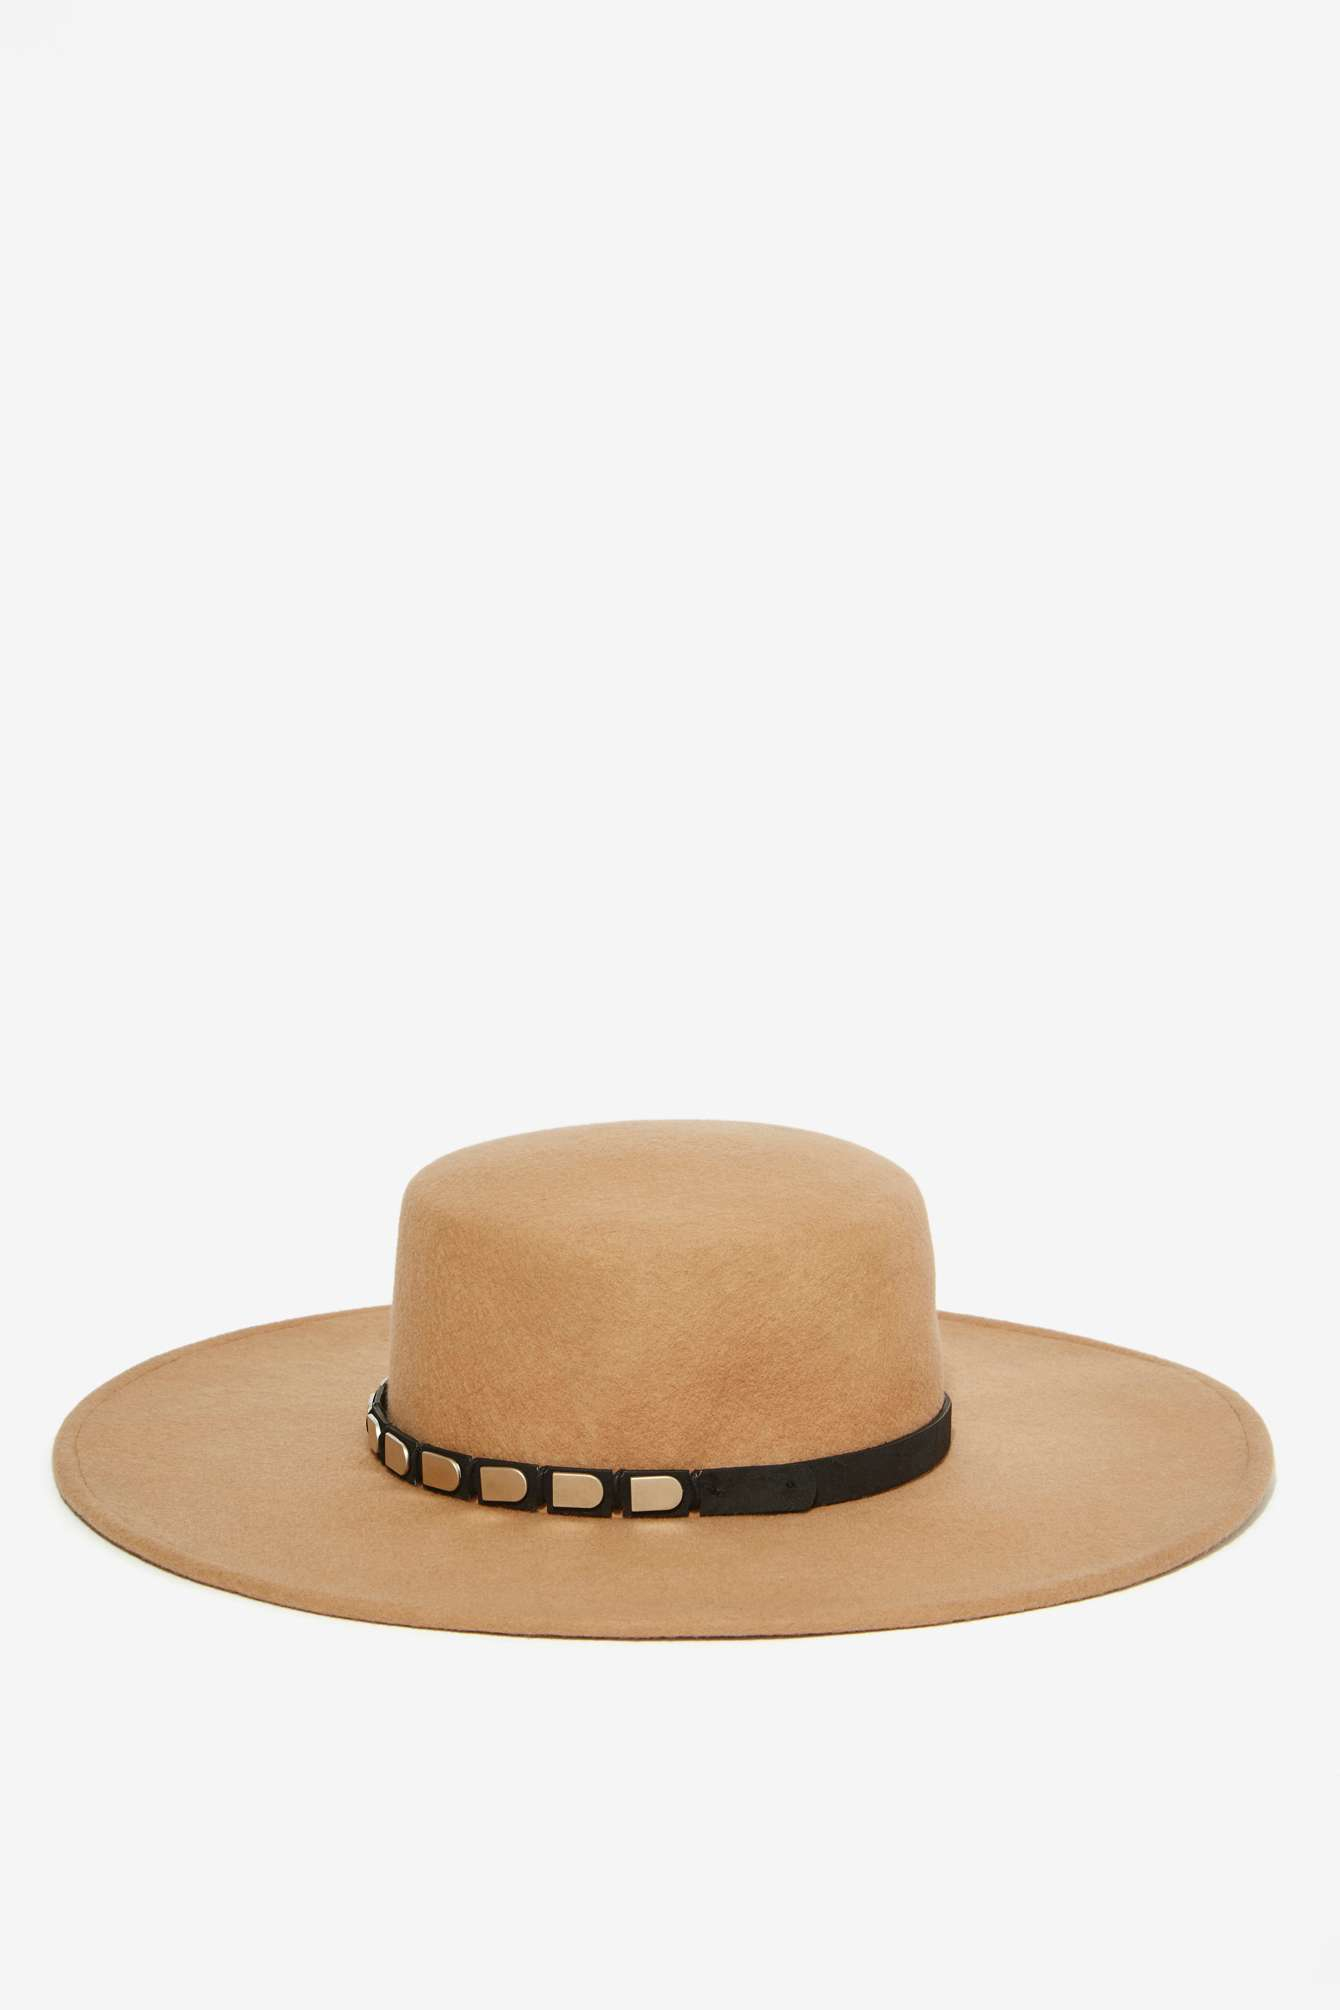 9ac0561378417 Lyst - Nasty Gal Janelle Boater Hat - Camel in Natural